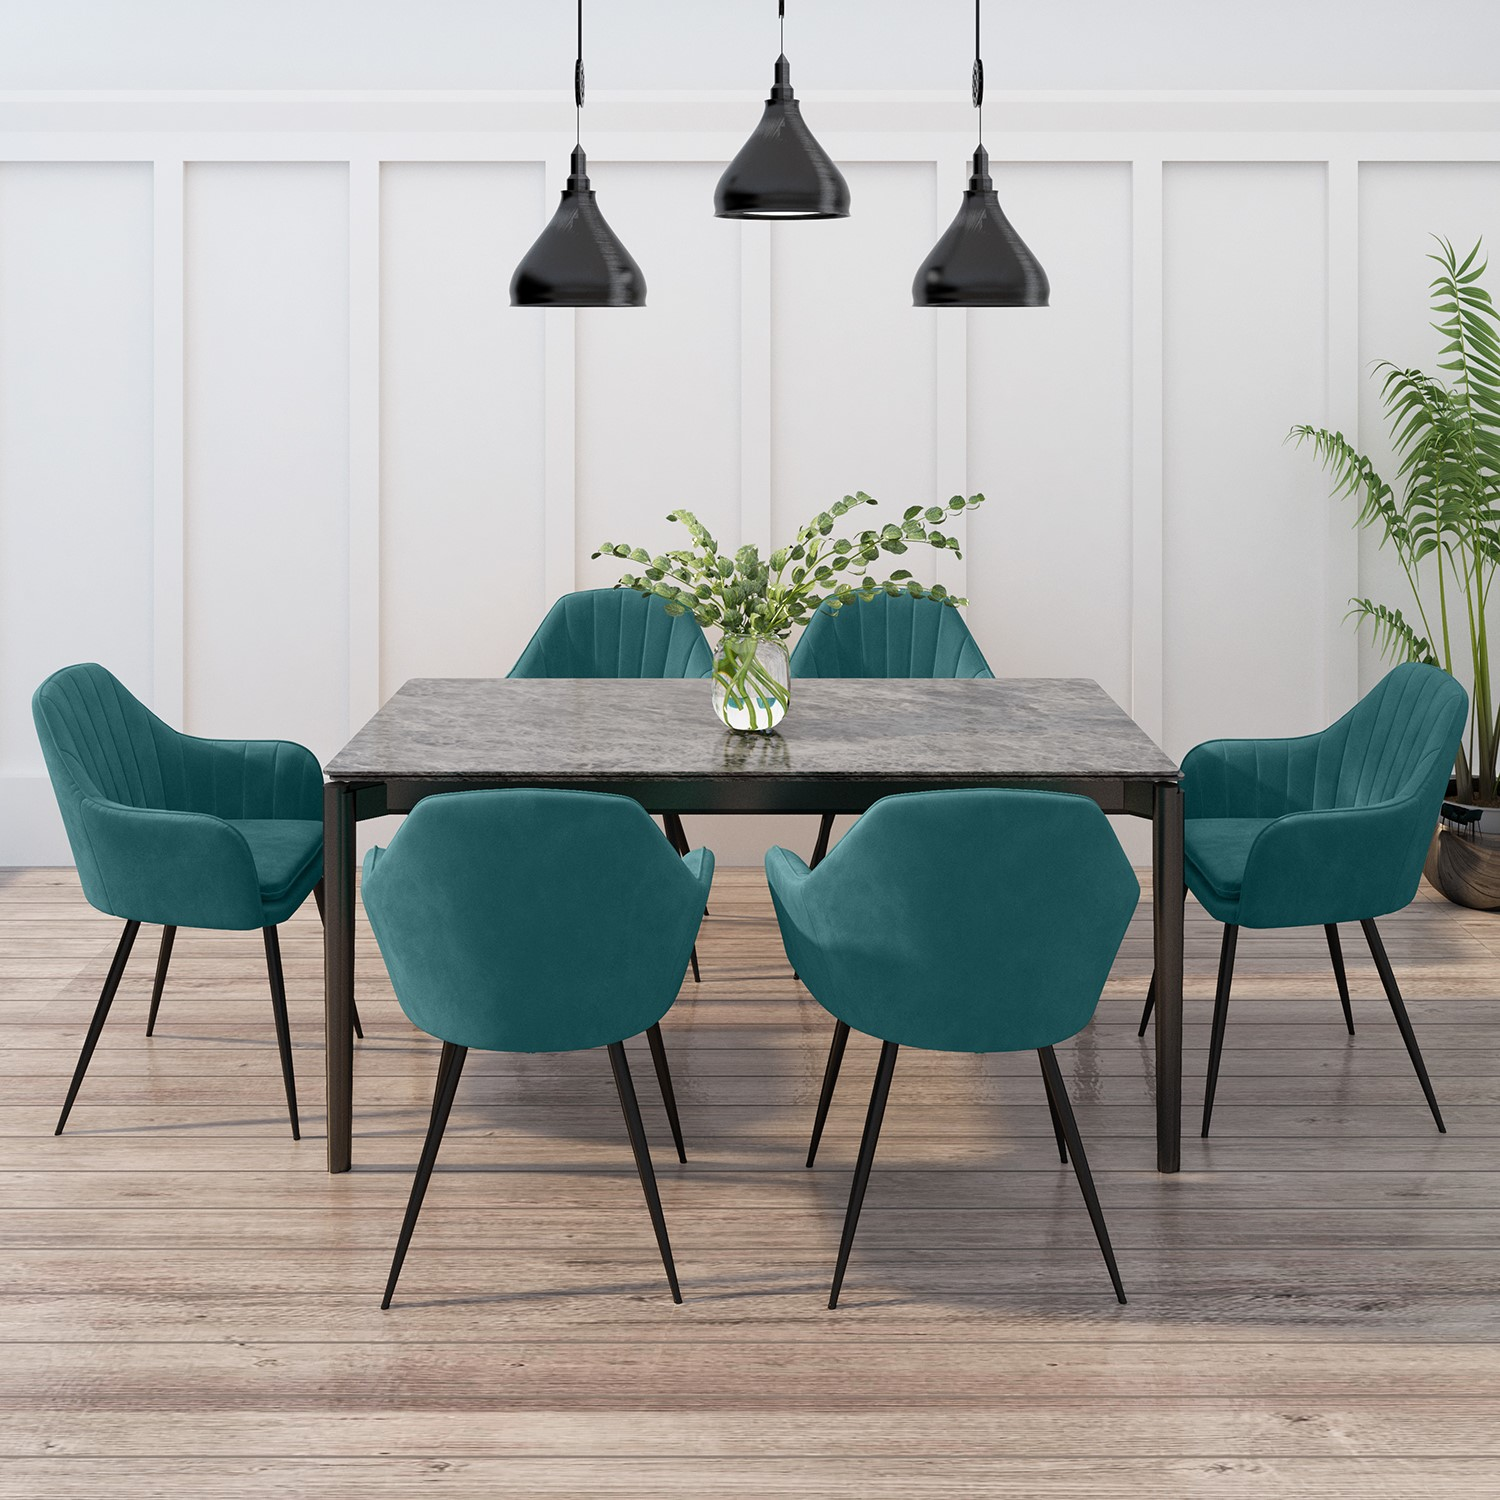 6 Teal Velvet Dining Chairs, Dining Room Chairs Set Of 6